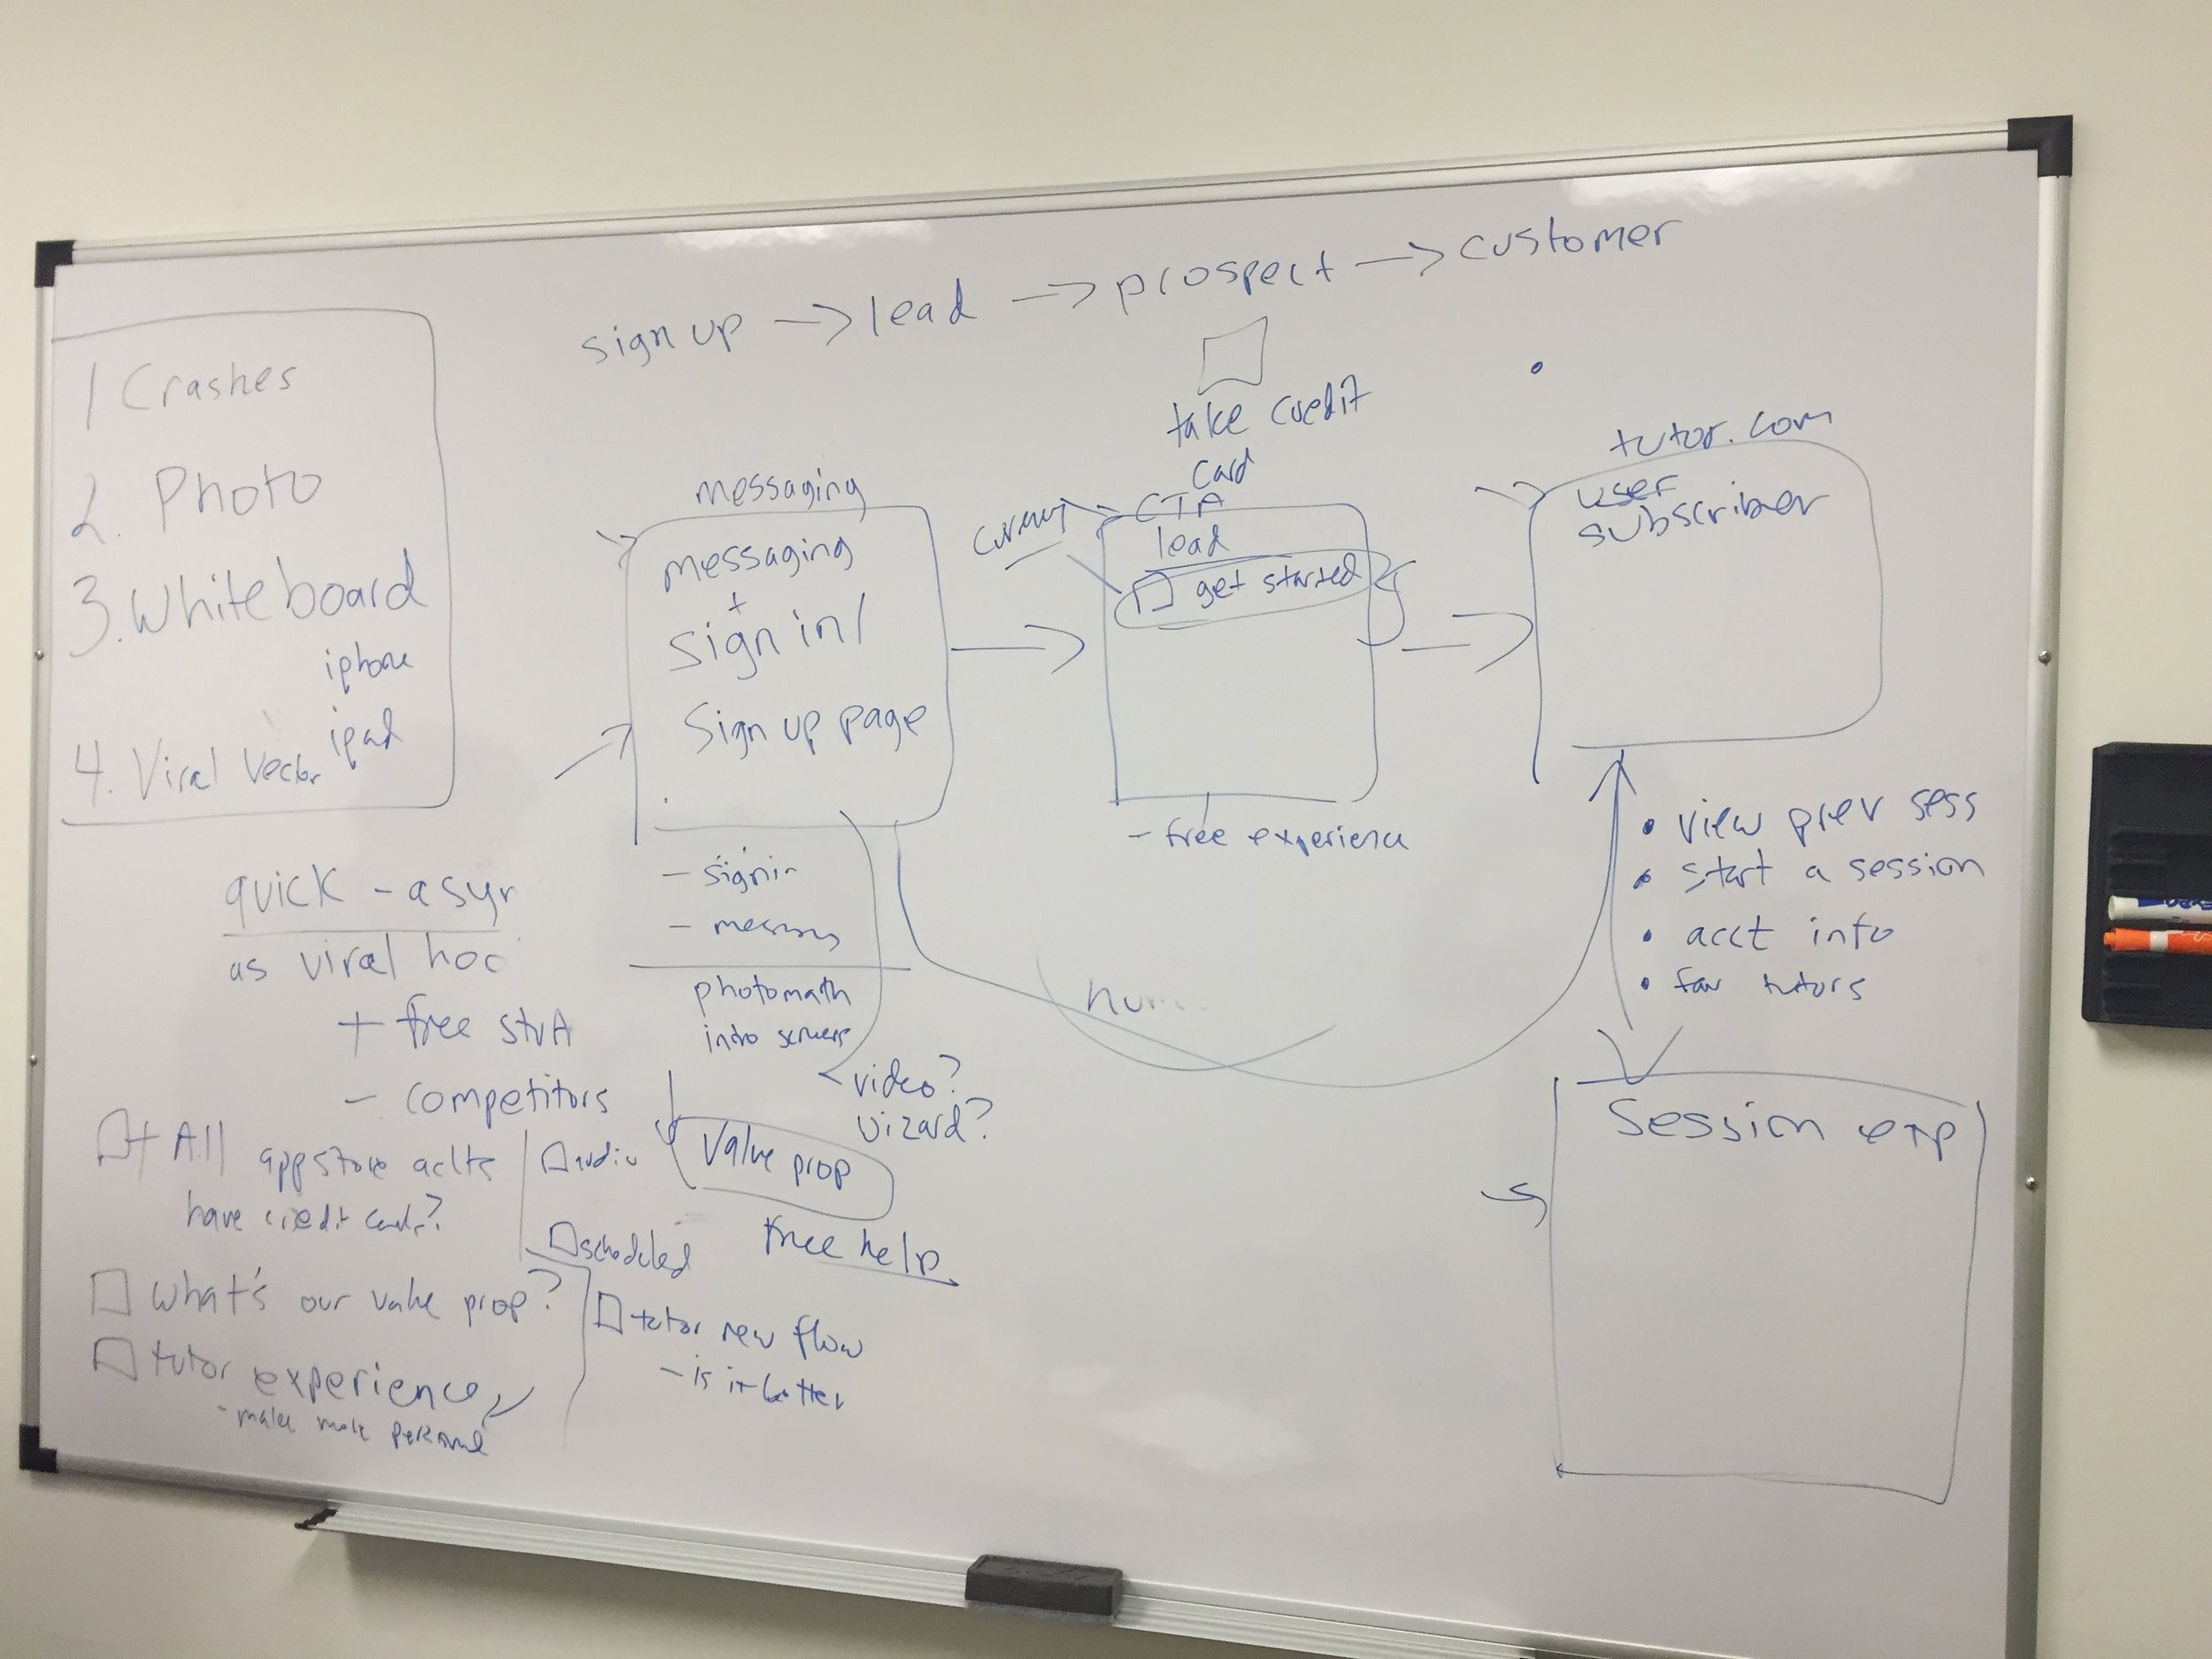 Initial user flow sketches